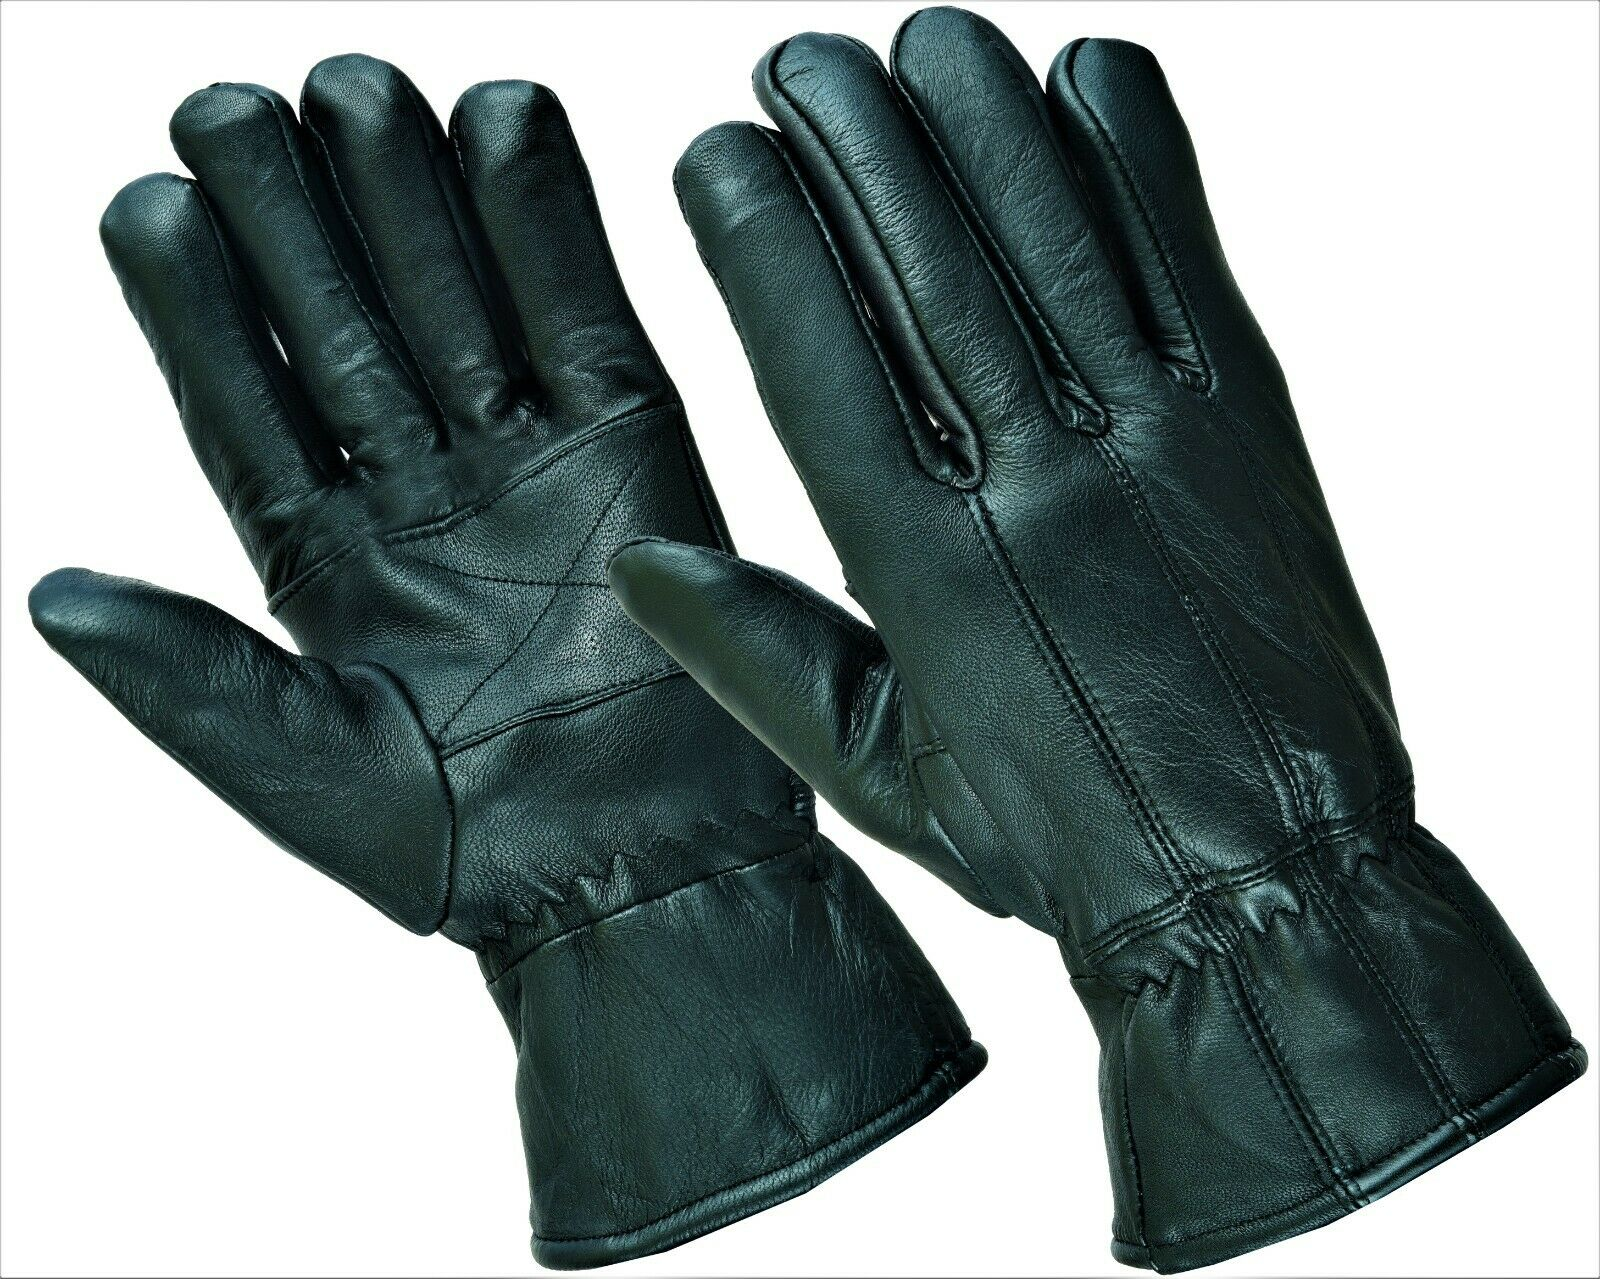 FREE DELIVERY Luxury Real Leather Gloves Thermal Lined Riding Driving in Winter